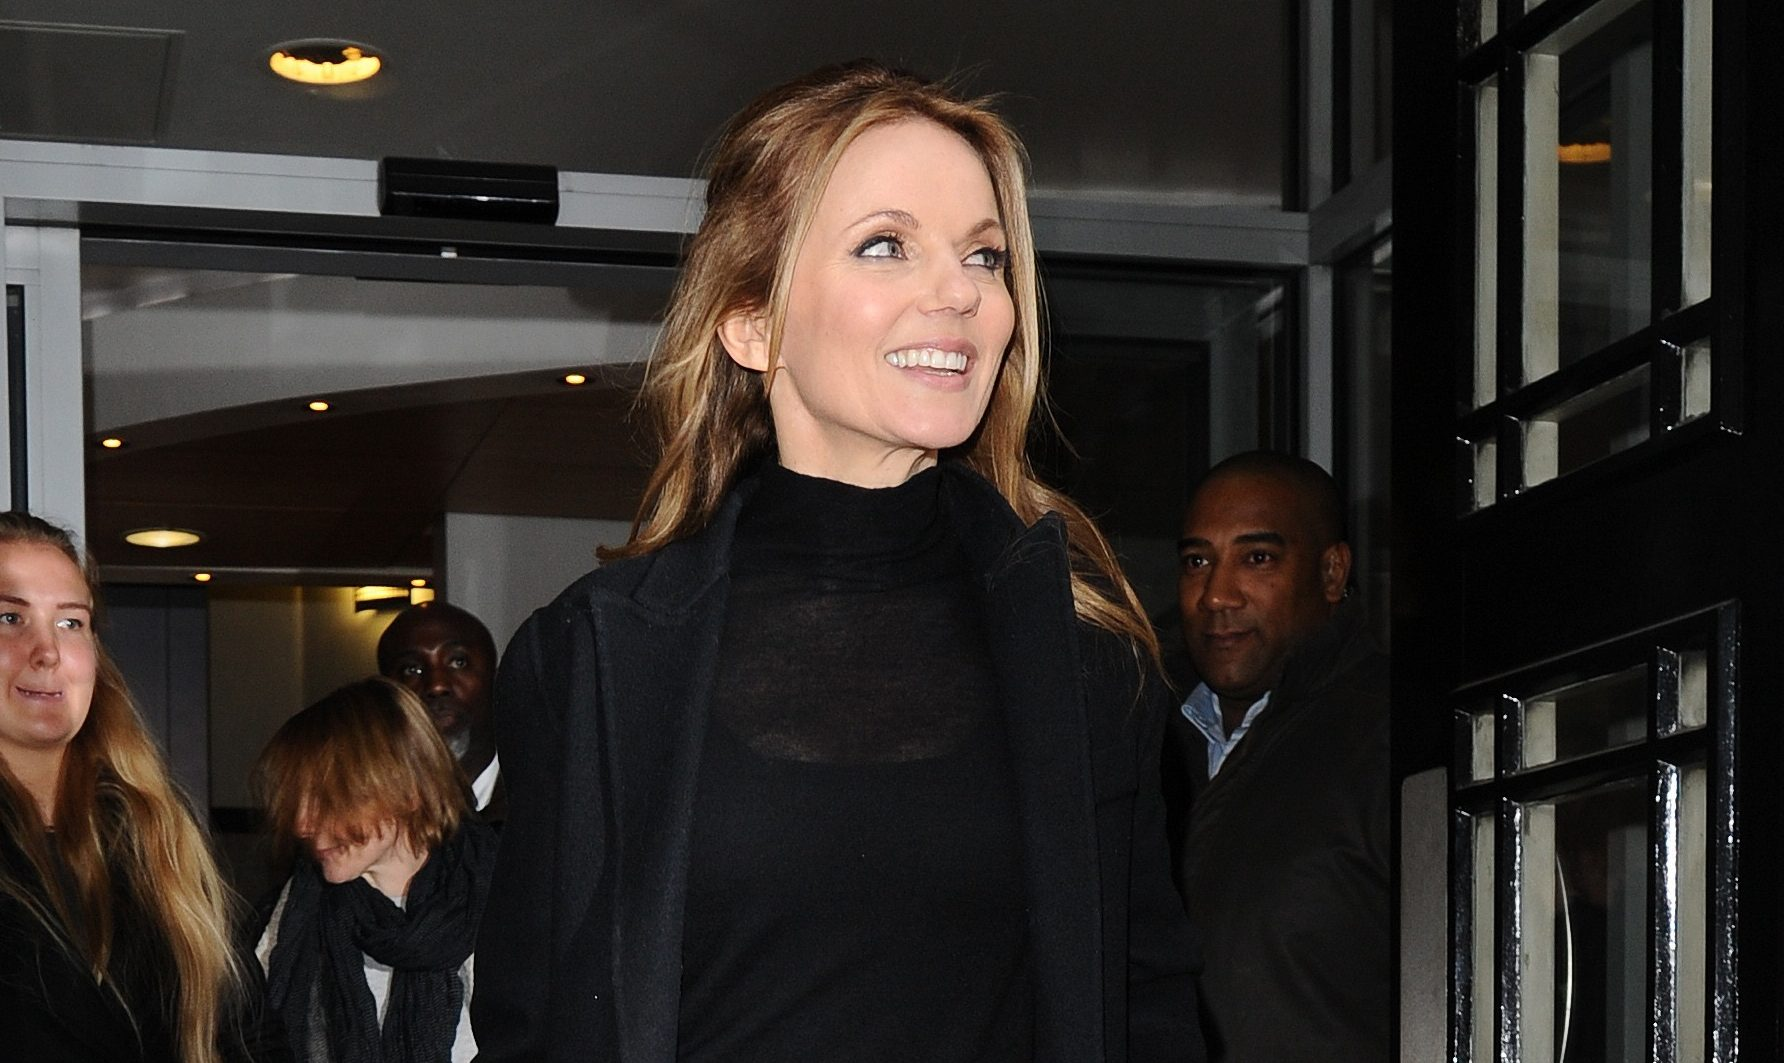 Spice Girl Geri Horner reveals the reason she's banned from I'm A Celebrity